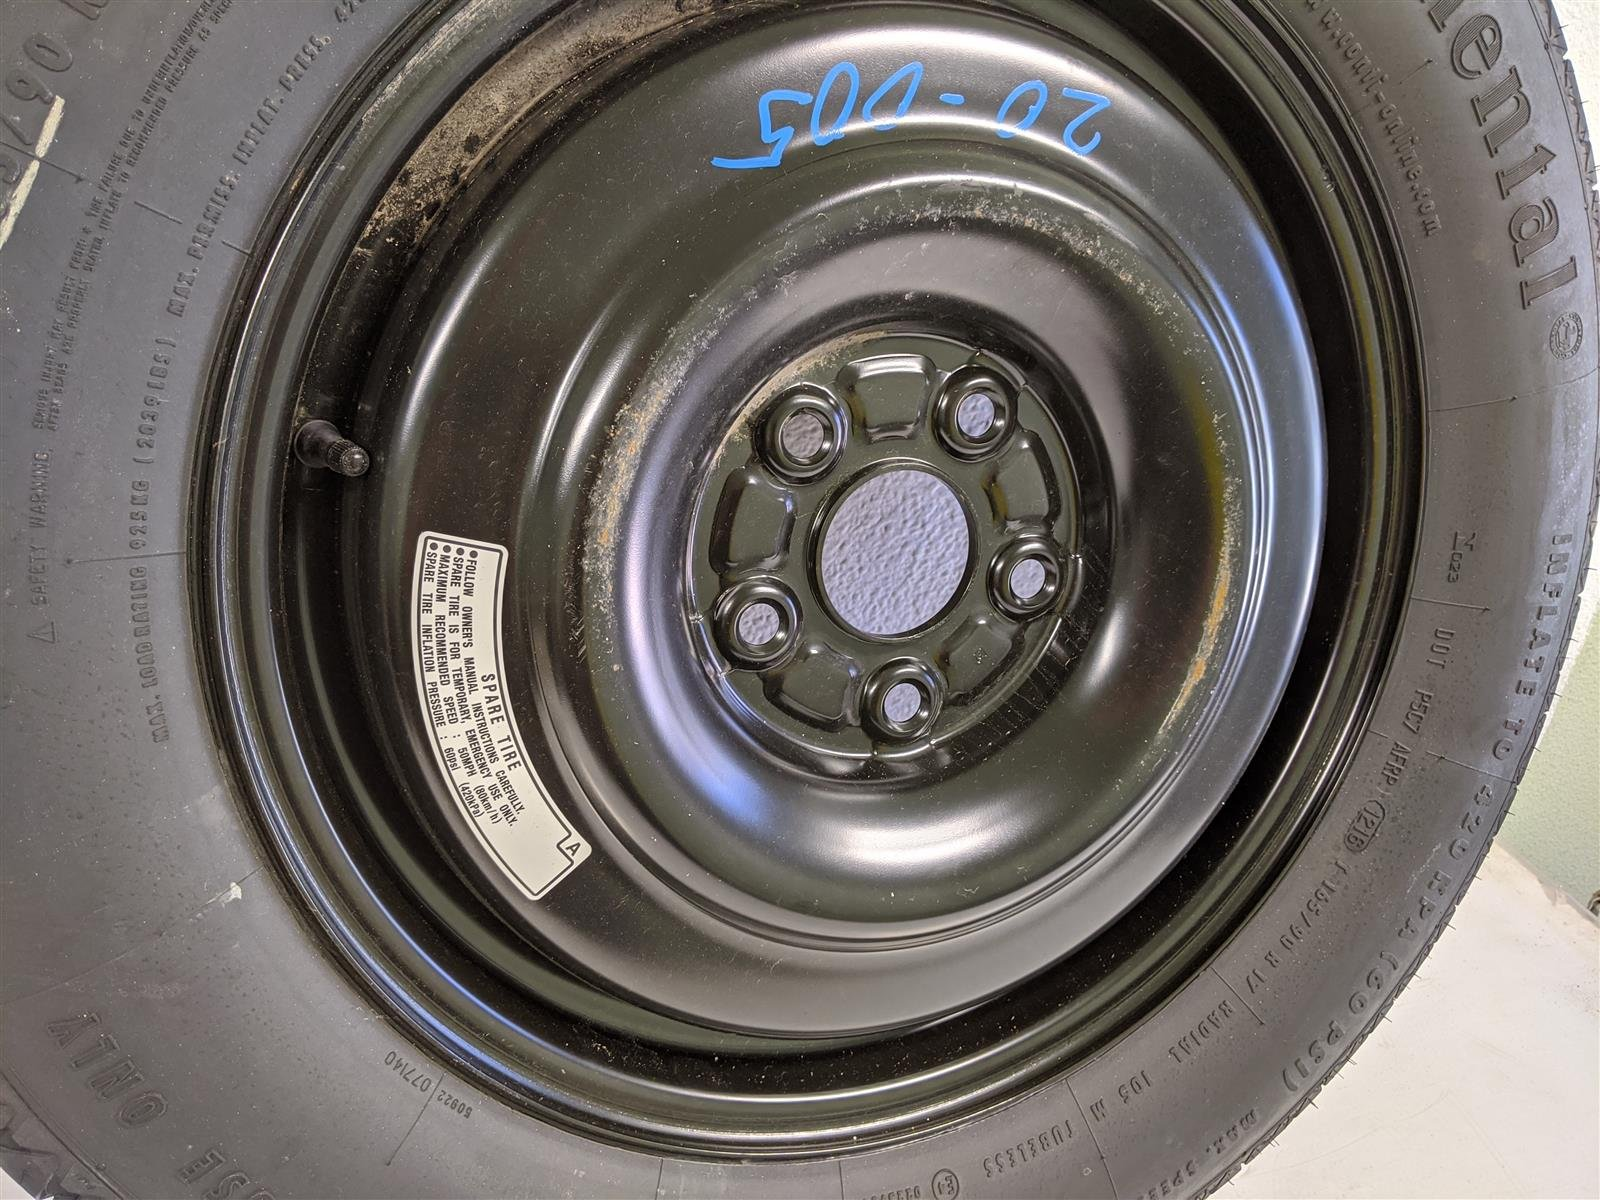 2017 Honda Ridgeline 17 Inch Spare Rim And Tire, Nice Replacement